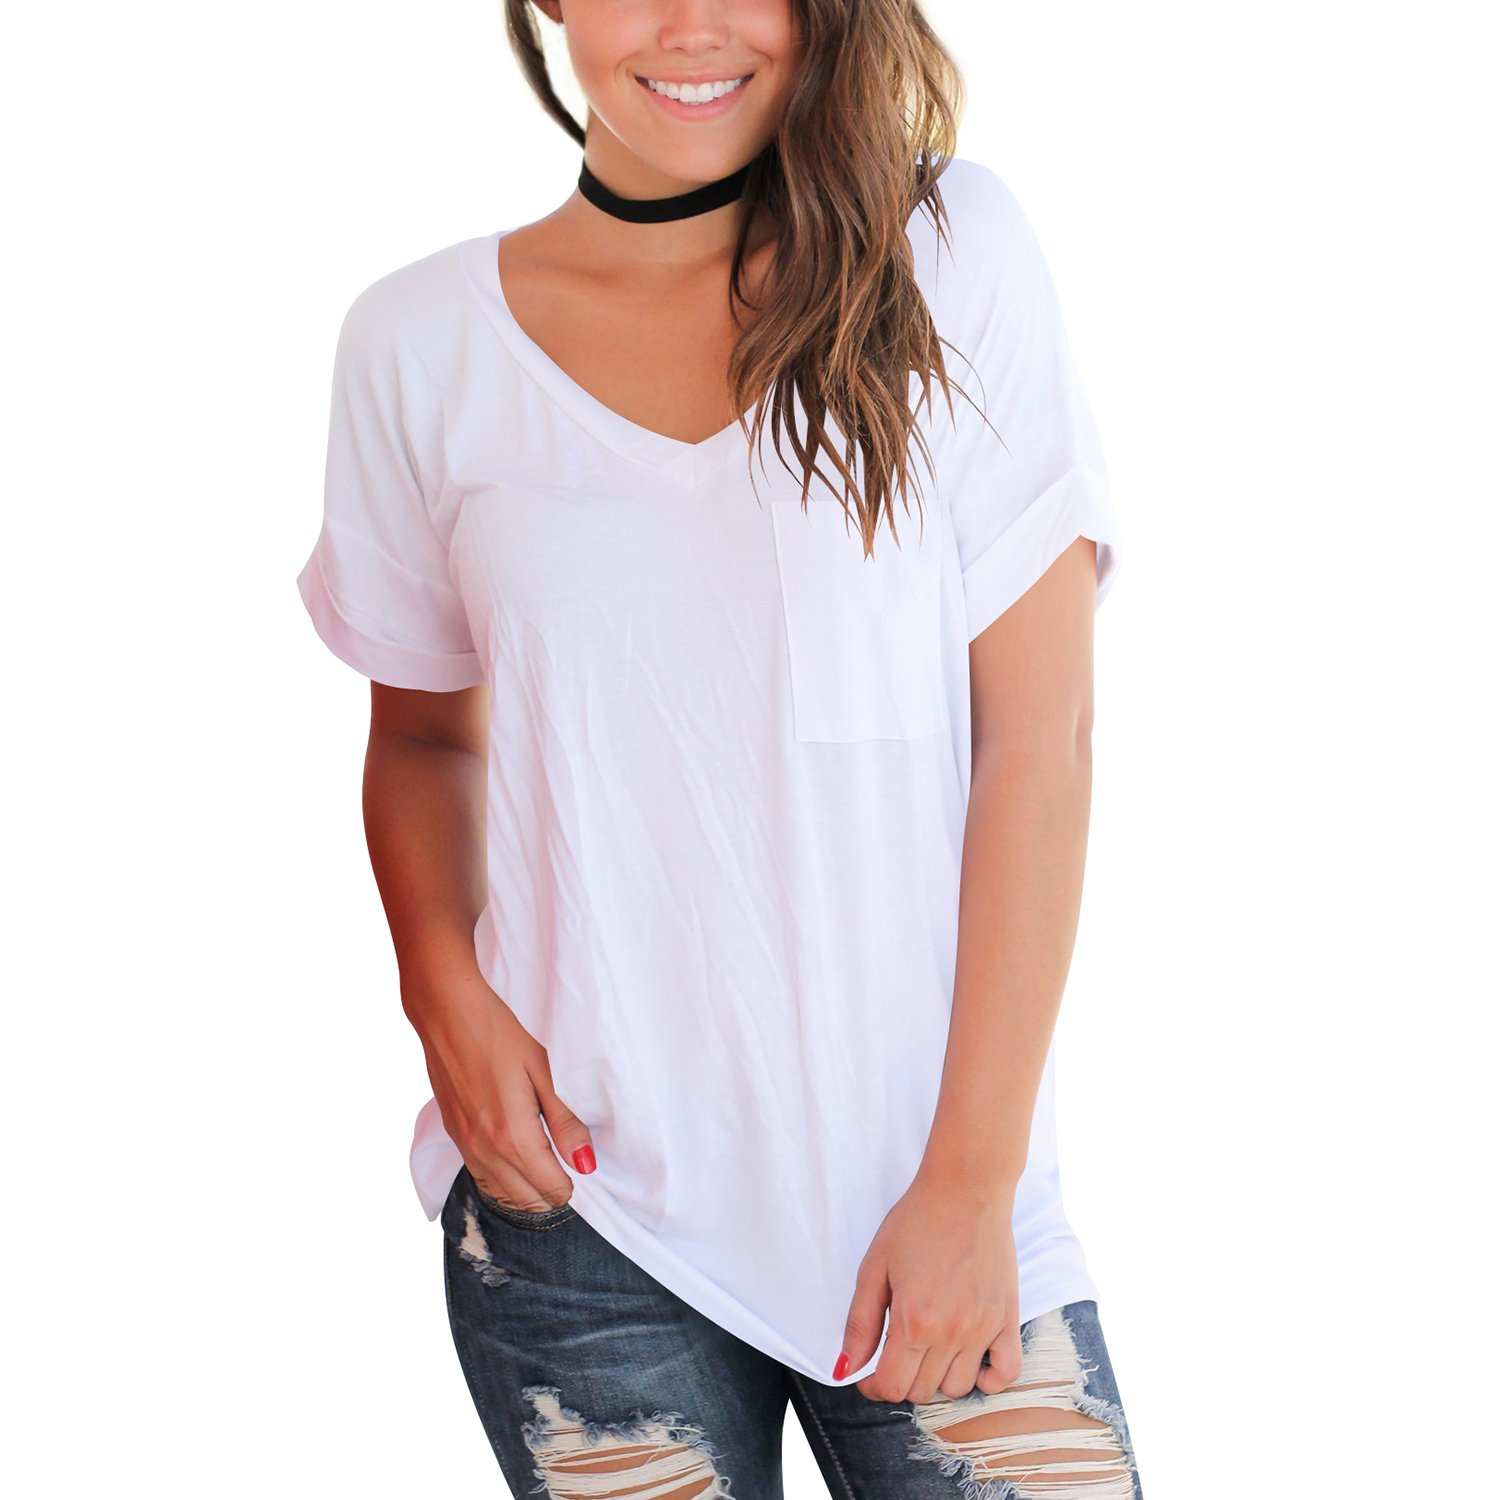 YS.DAMAI Women's Summer Basic Tee Tops Casual Loose Short Sleeve T Shirt with Front Pocket (Large, White)